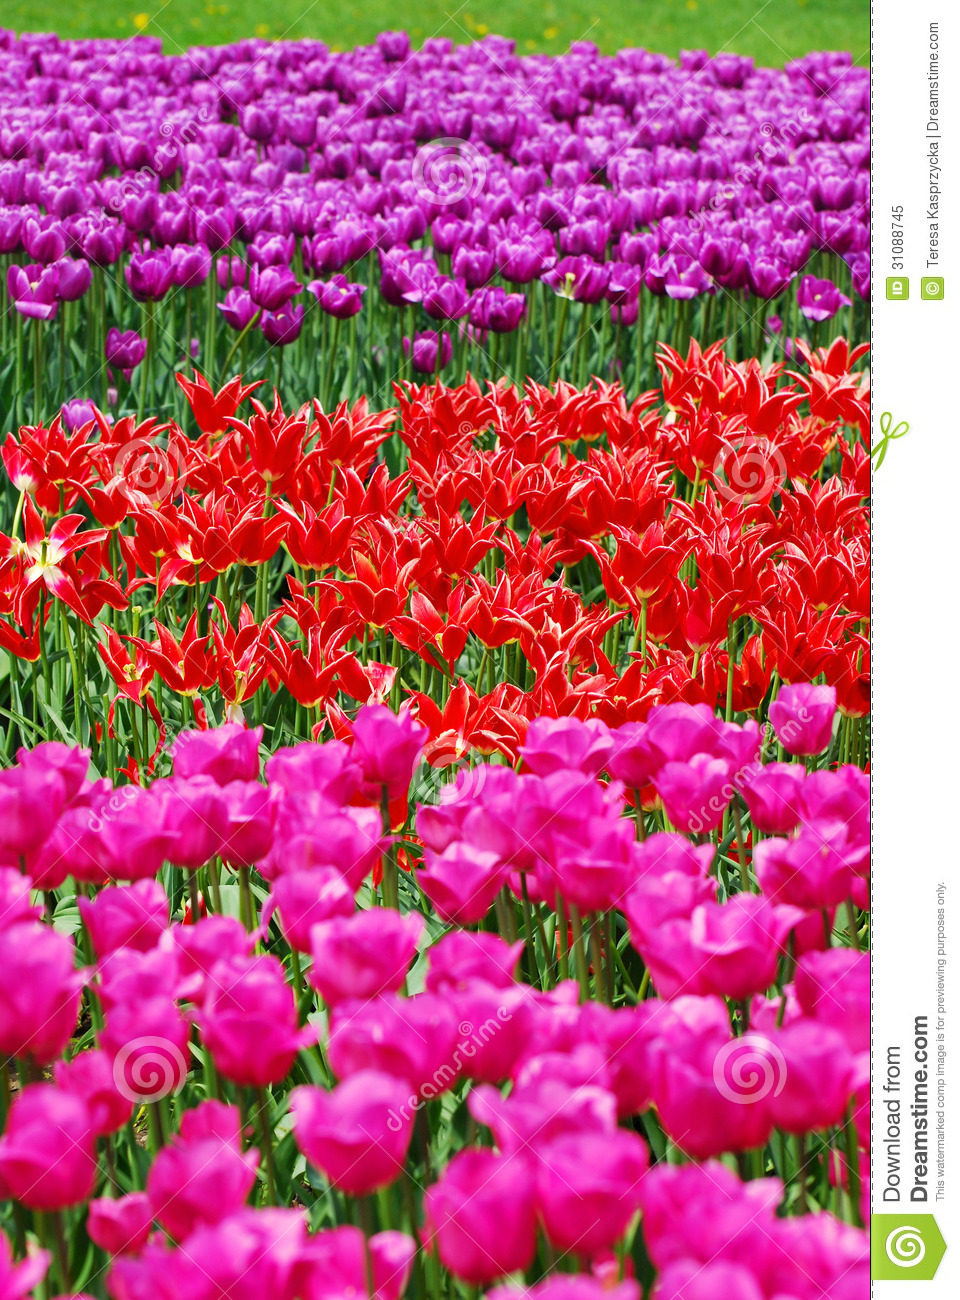 Background with tulip fields in different colors